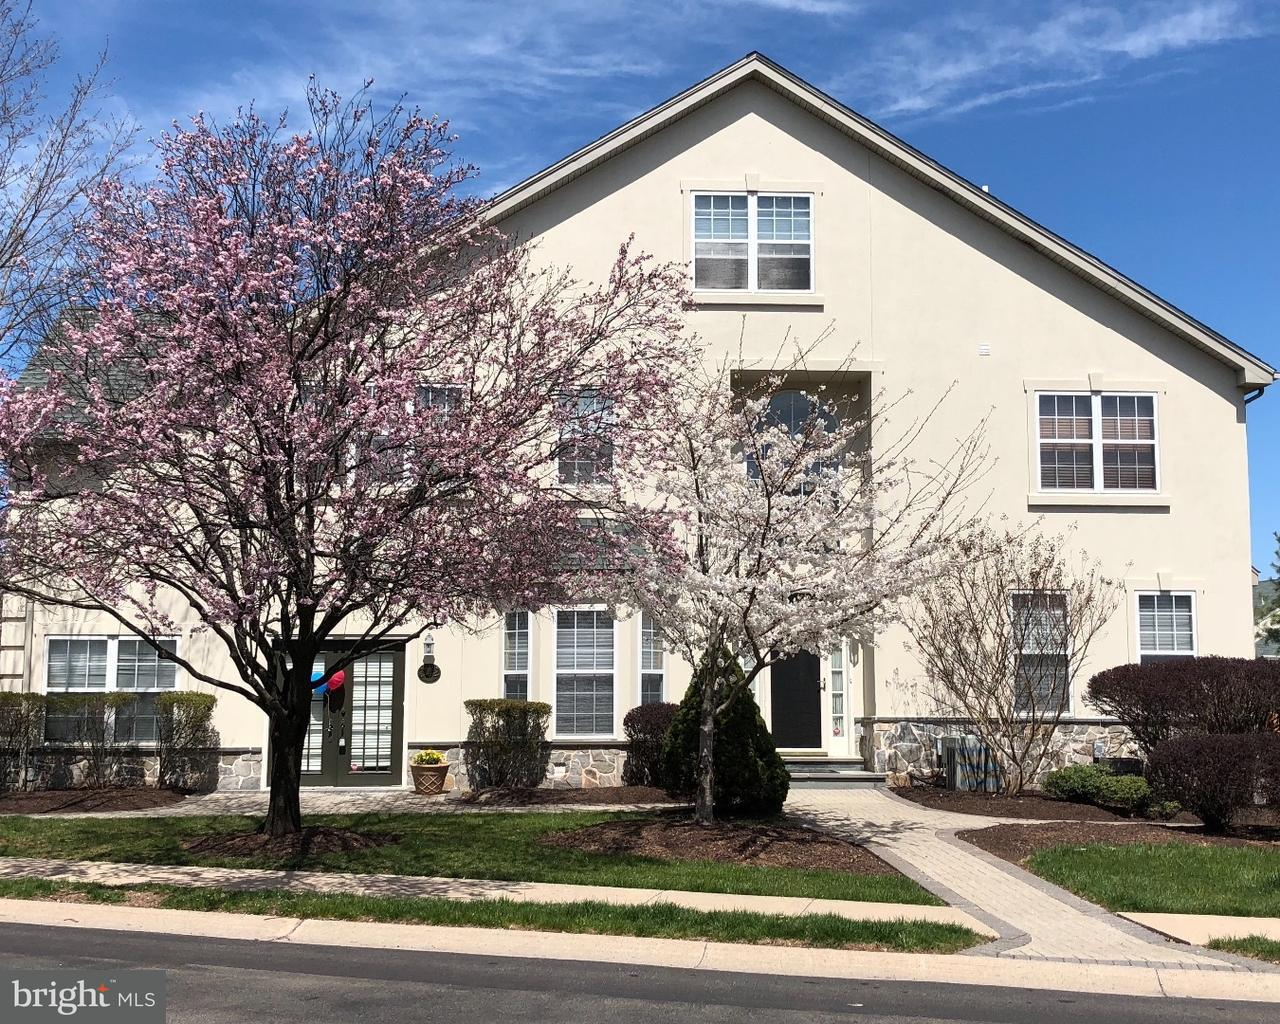 342 SILO MILL LN, LANSDALE - Listed at $419,000, LANSDALE